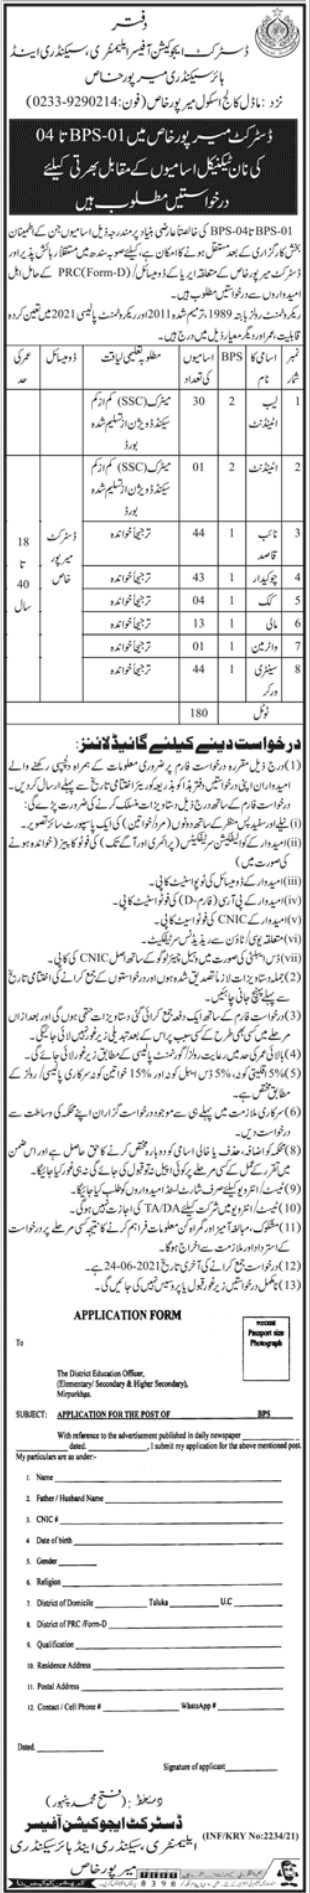 Jobs in District Education Office For Non Technical Staff in Mirpur Khas 2021